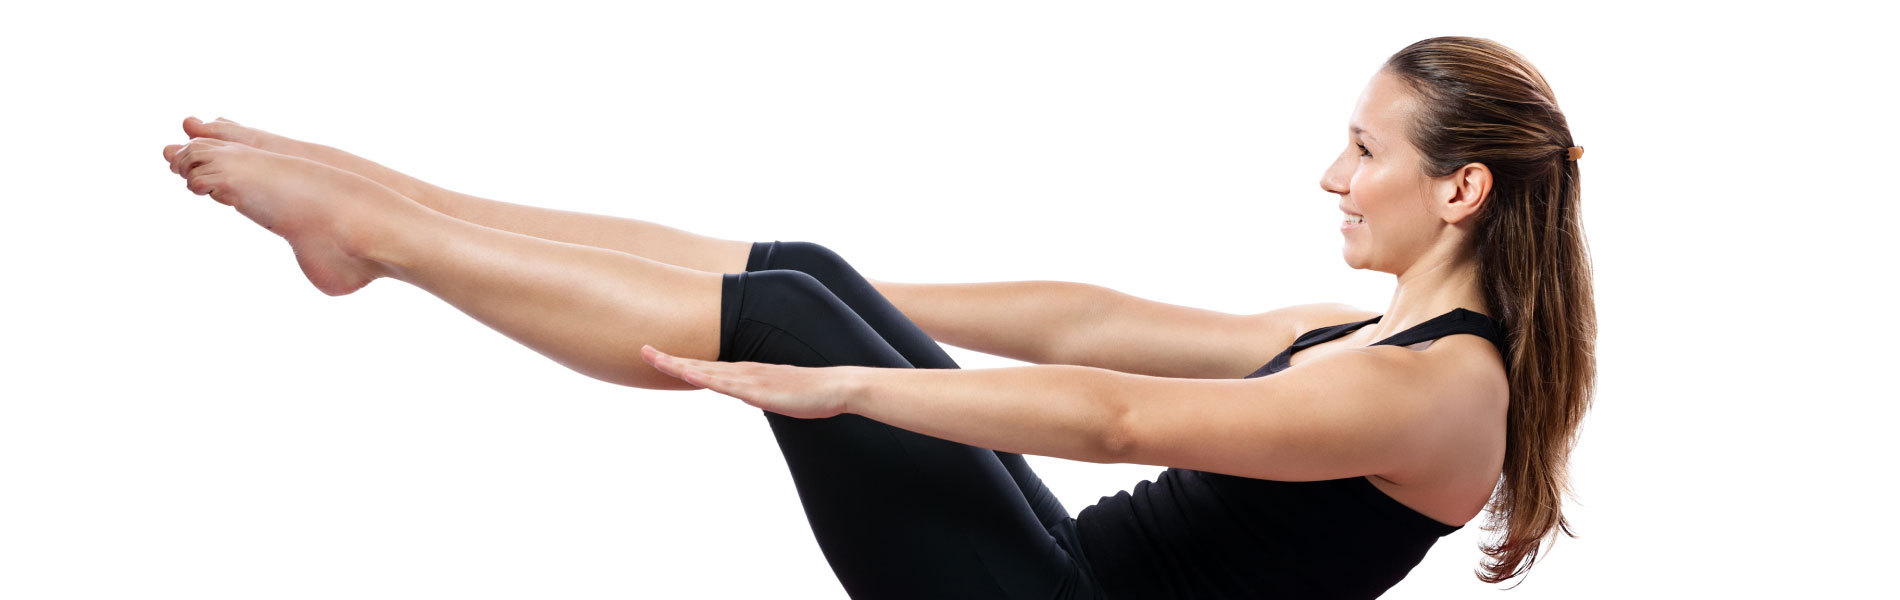 A Guide to Pilates Information and Movement for the Beginner